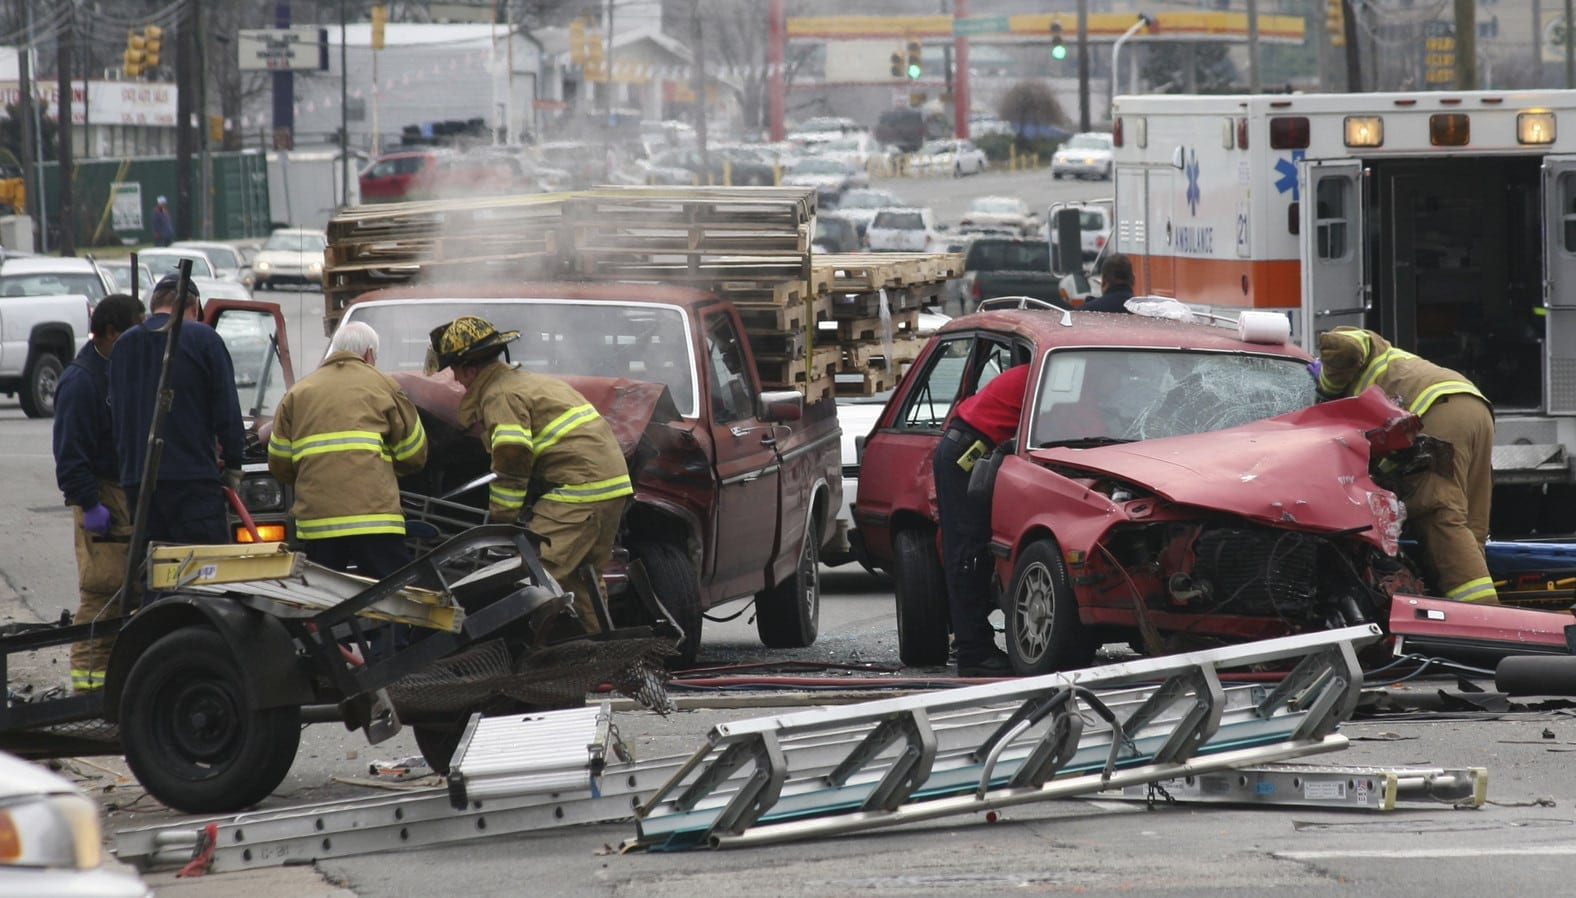 First Responders Responding To Car Accident Scene Stock Photo